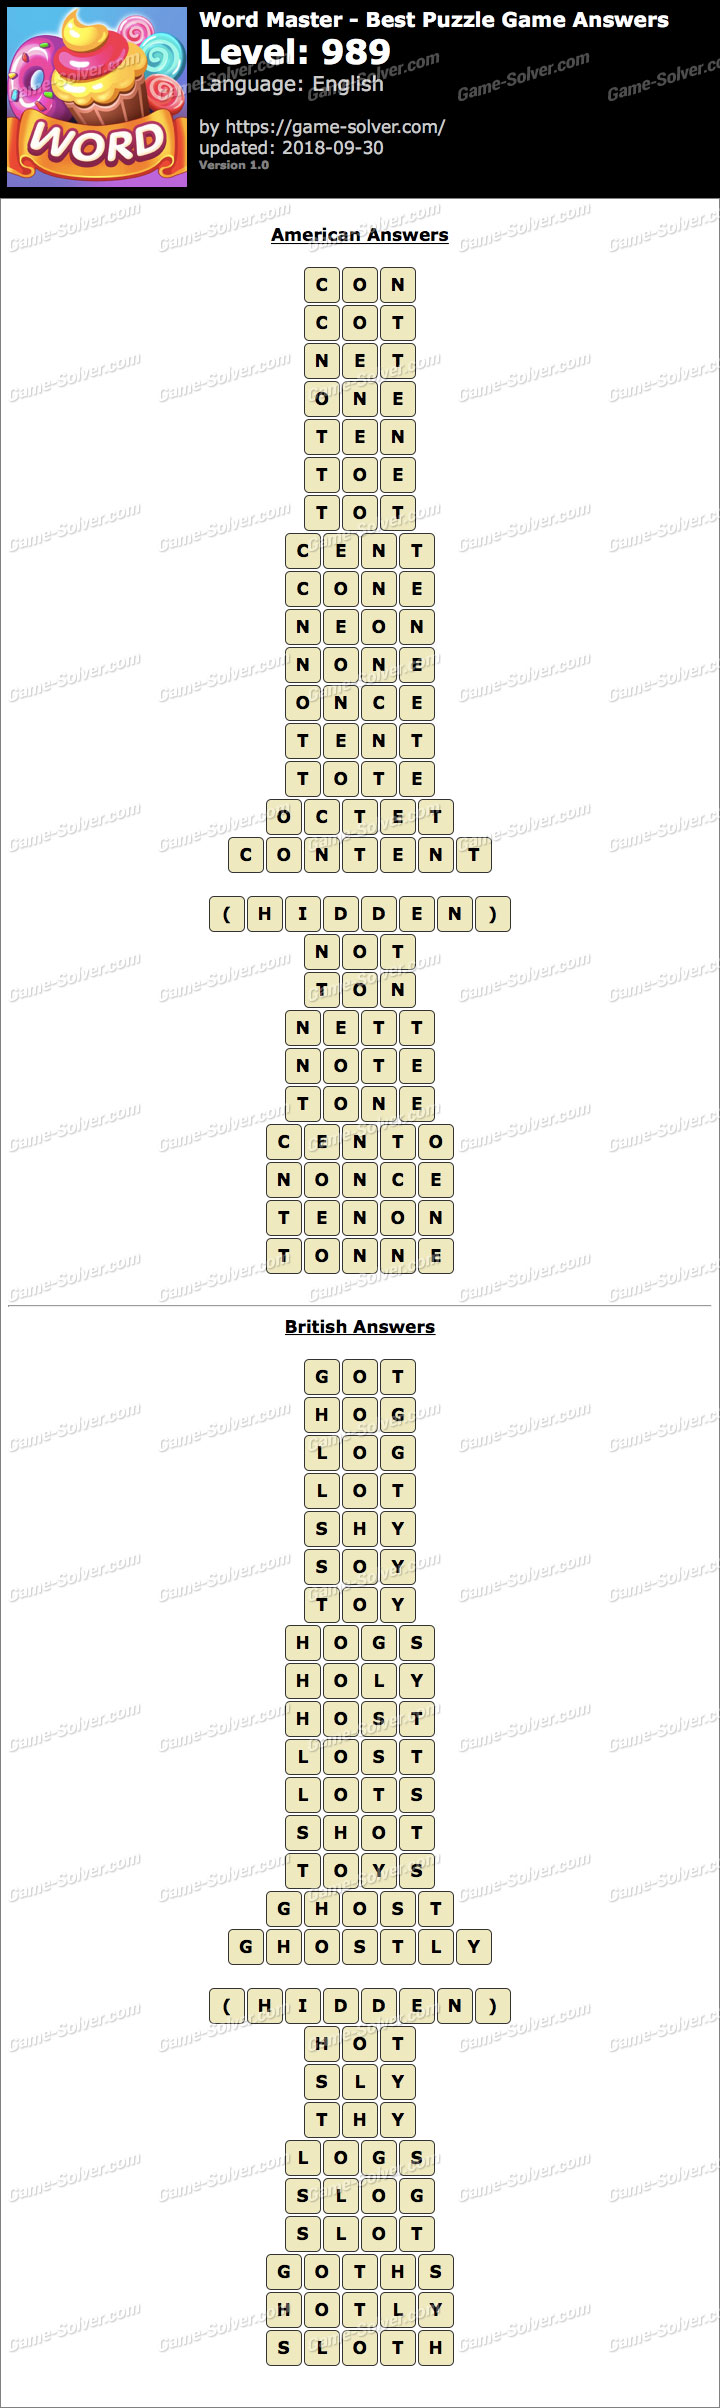 Word Master-Best Puzzle Game Level 989 Answers